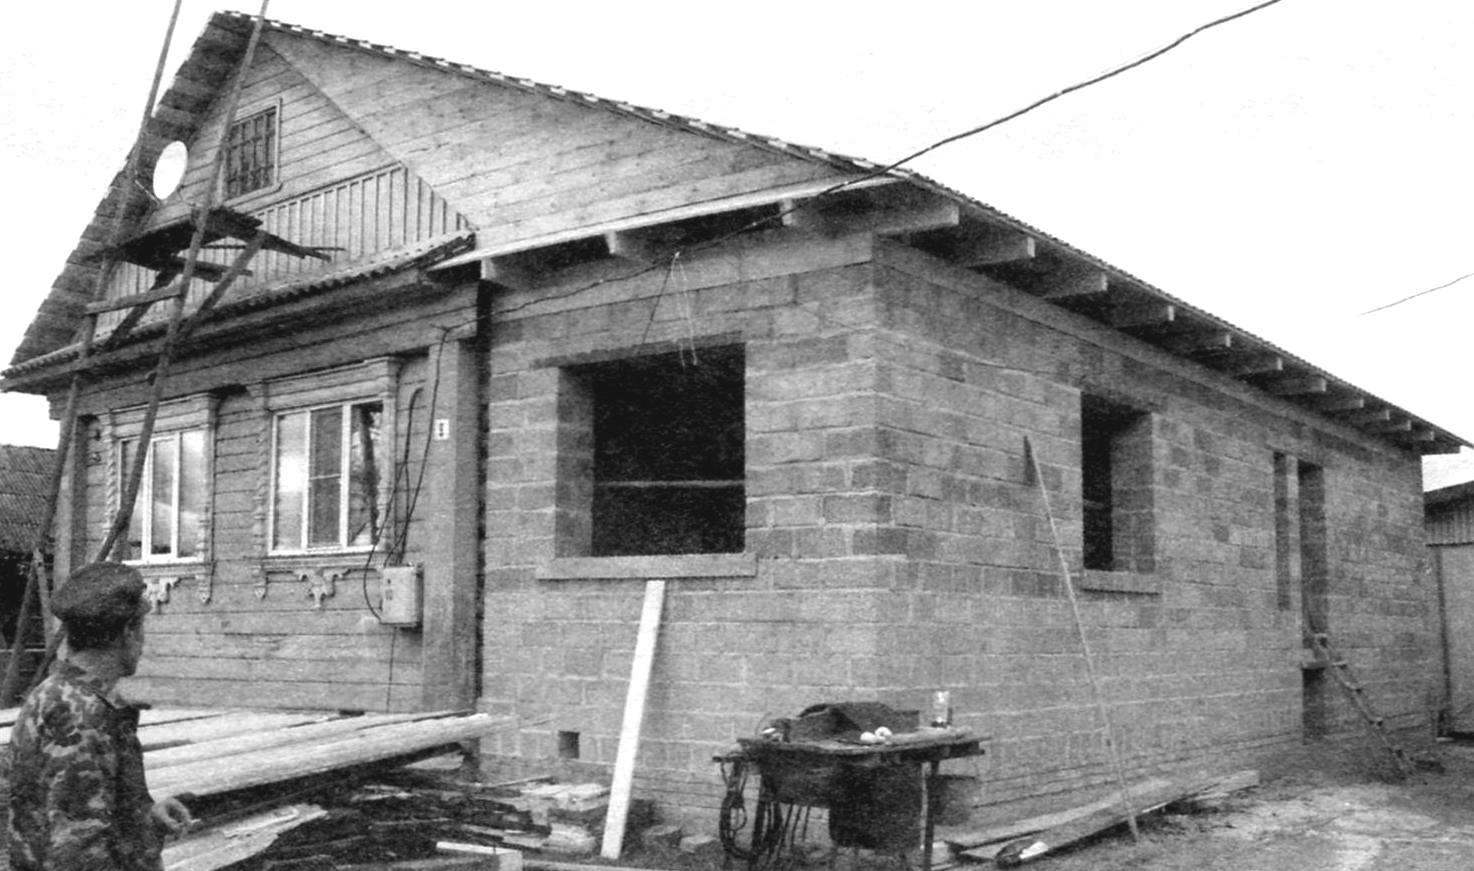 Old wooden house and the new porch of aggregate concrete blocks under a new common roof